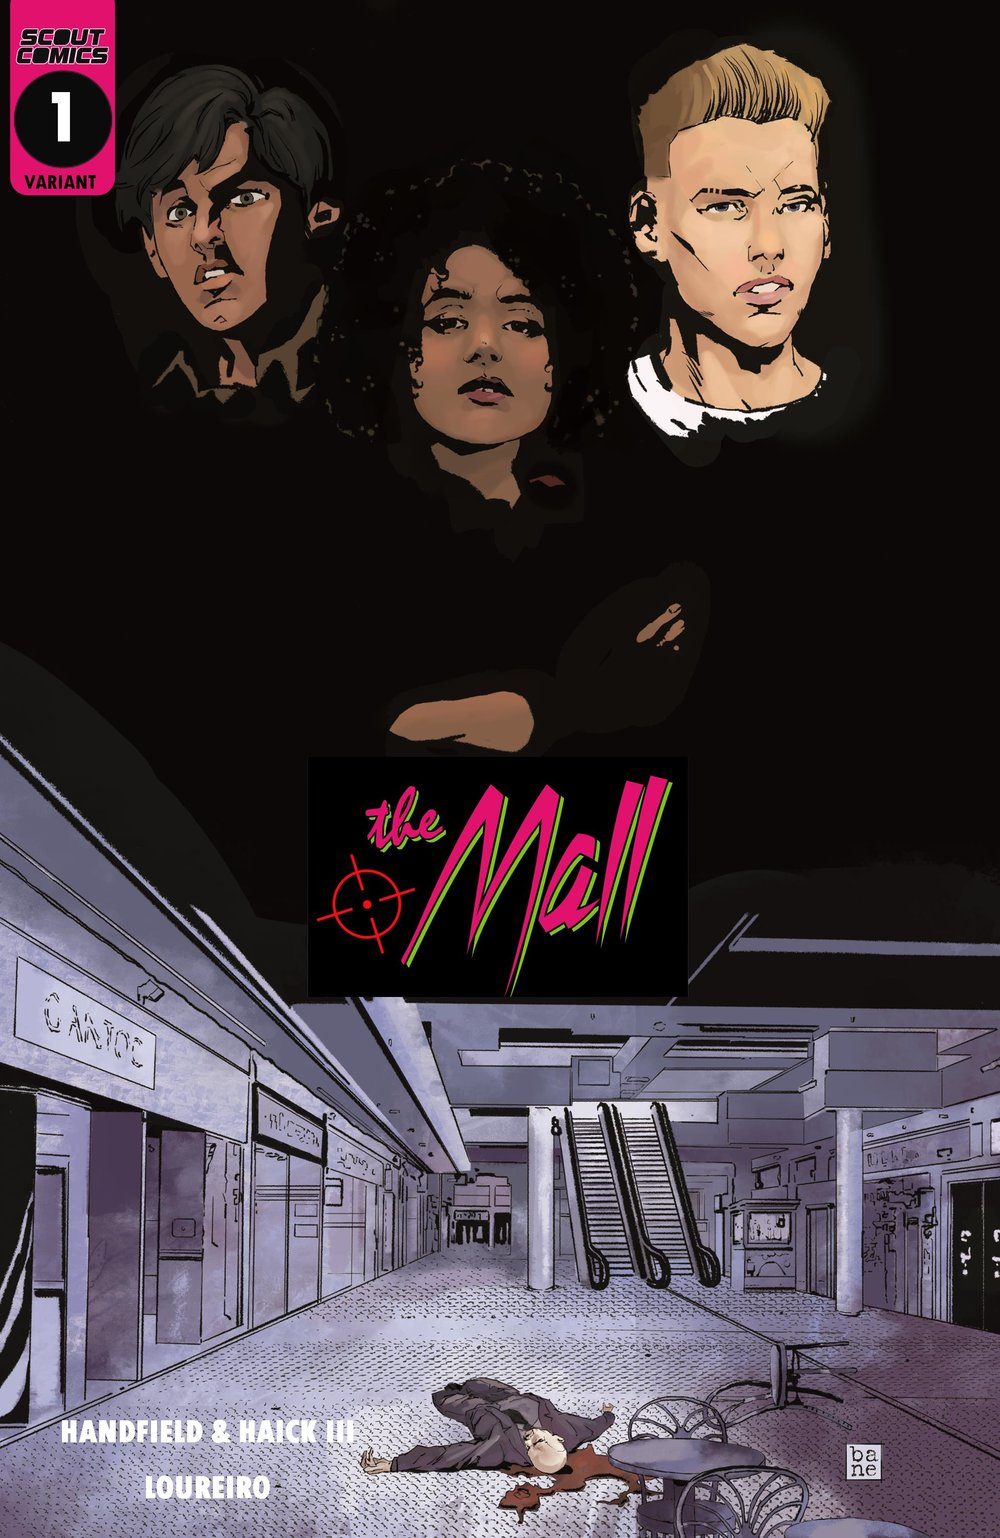 Mall 1 retailer incentive cover.jpg